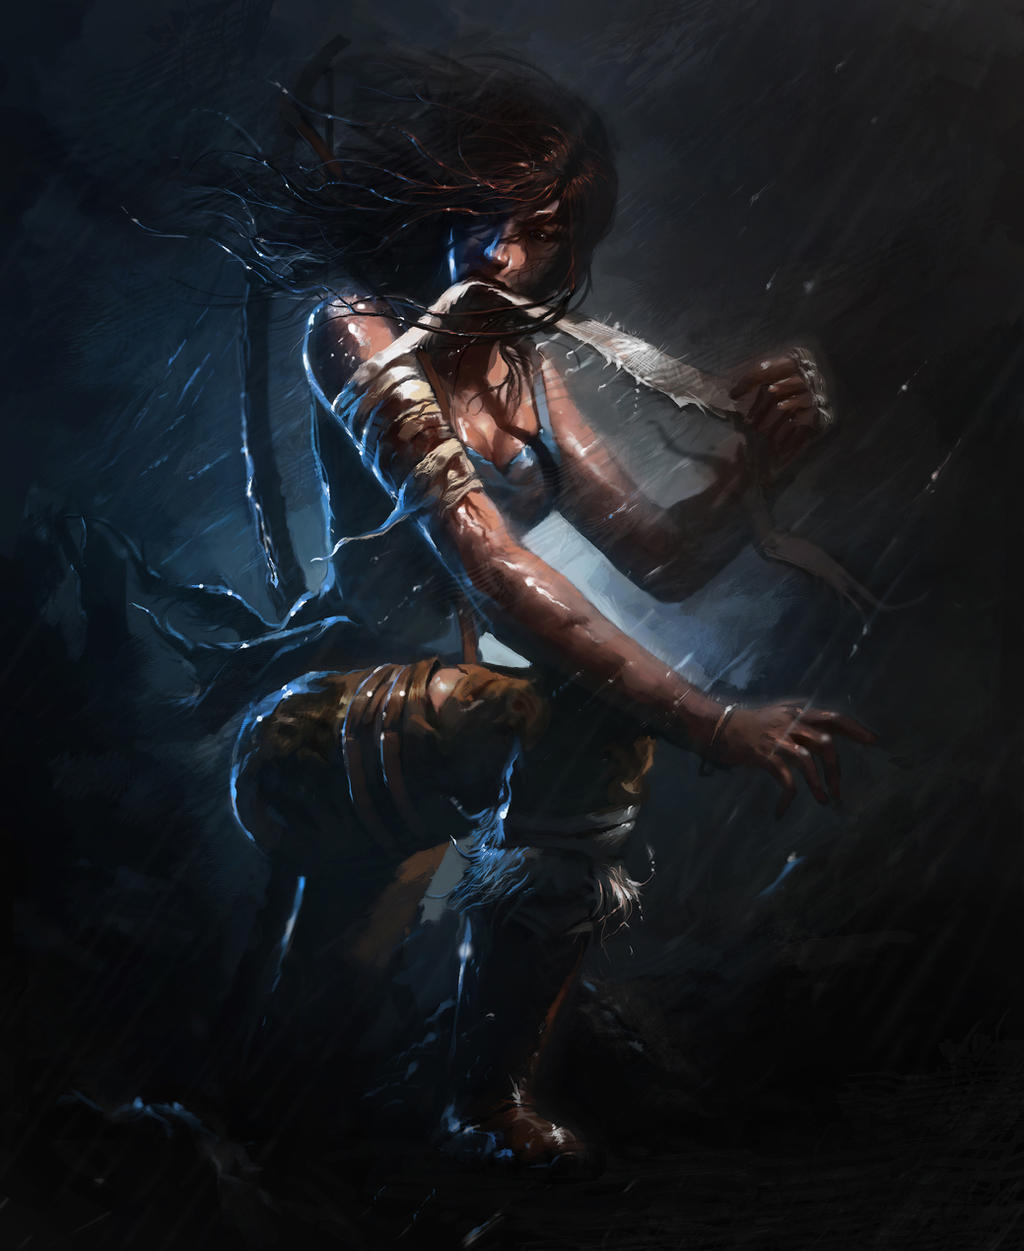 Lara Croft - Survivor by RAPHTOR